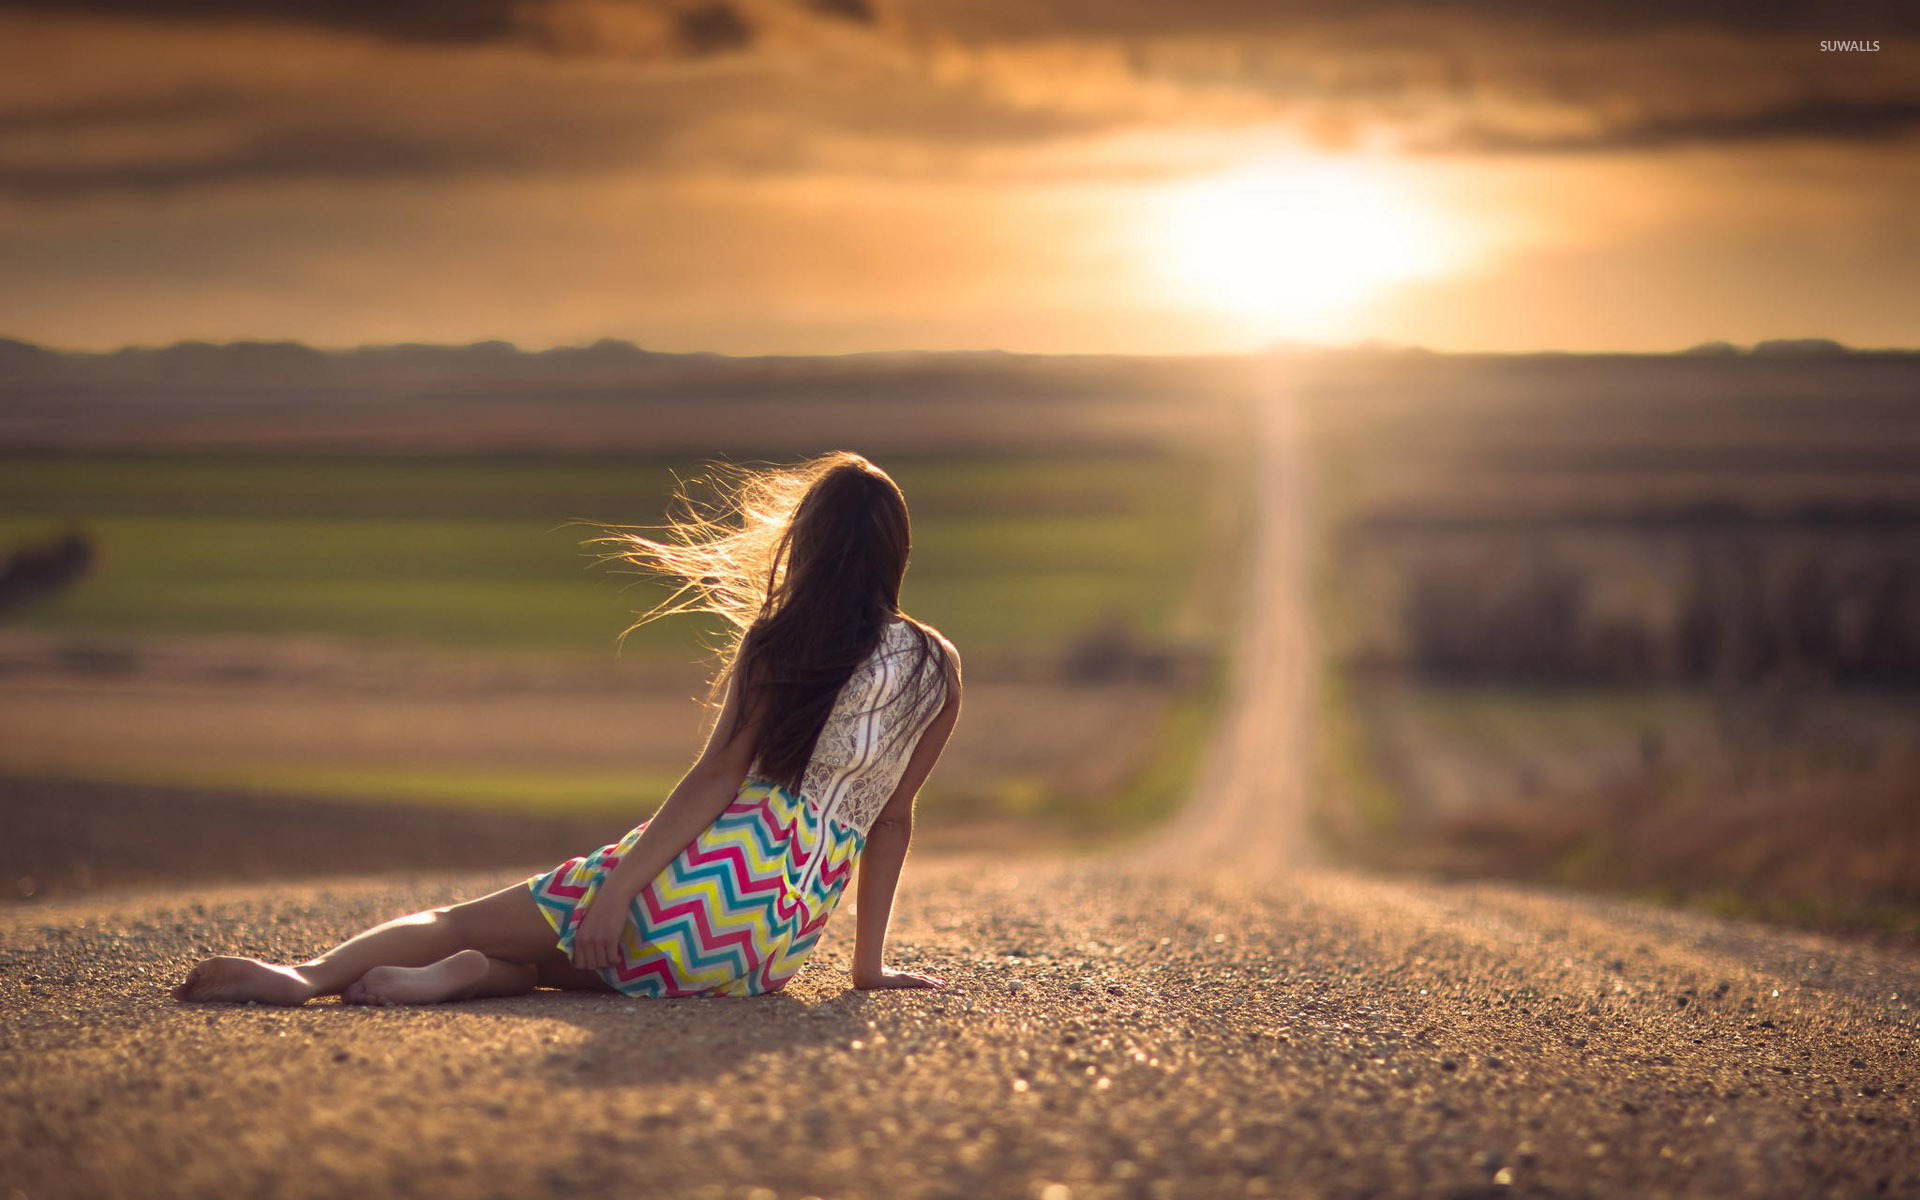 Woman watching the sunset wallpaper Photography wallpapers 40888